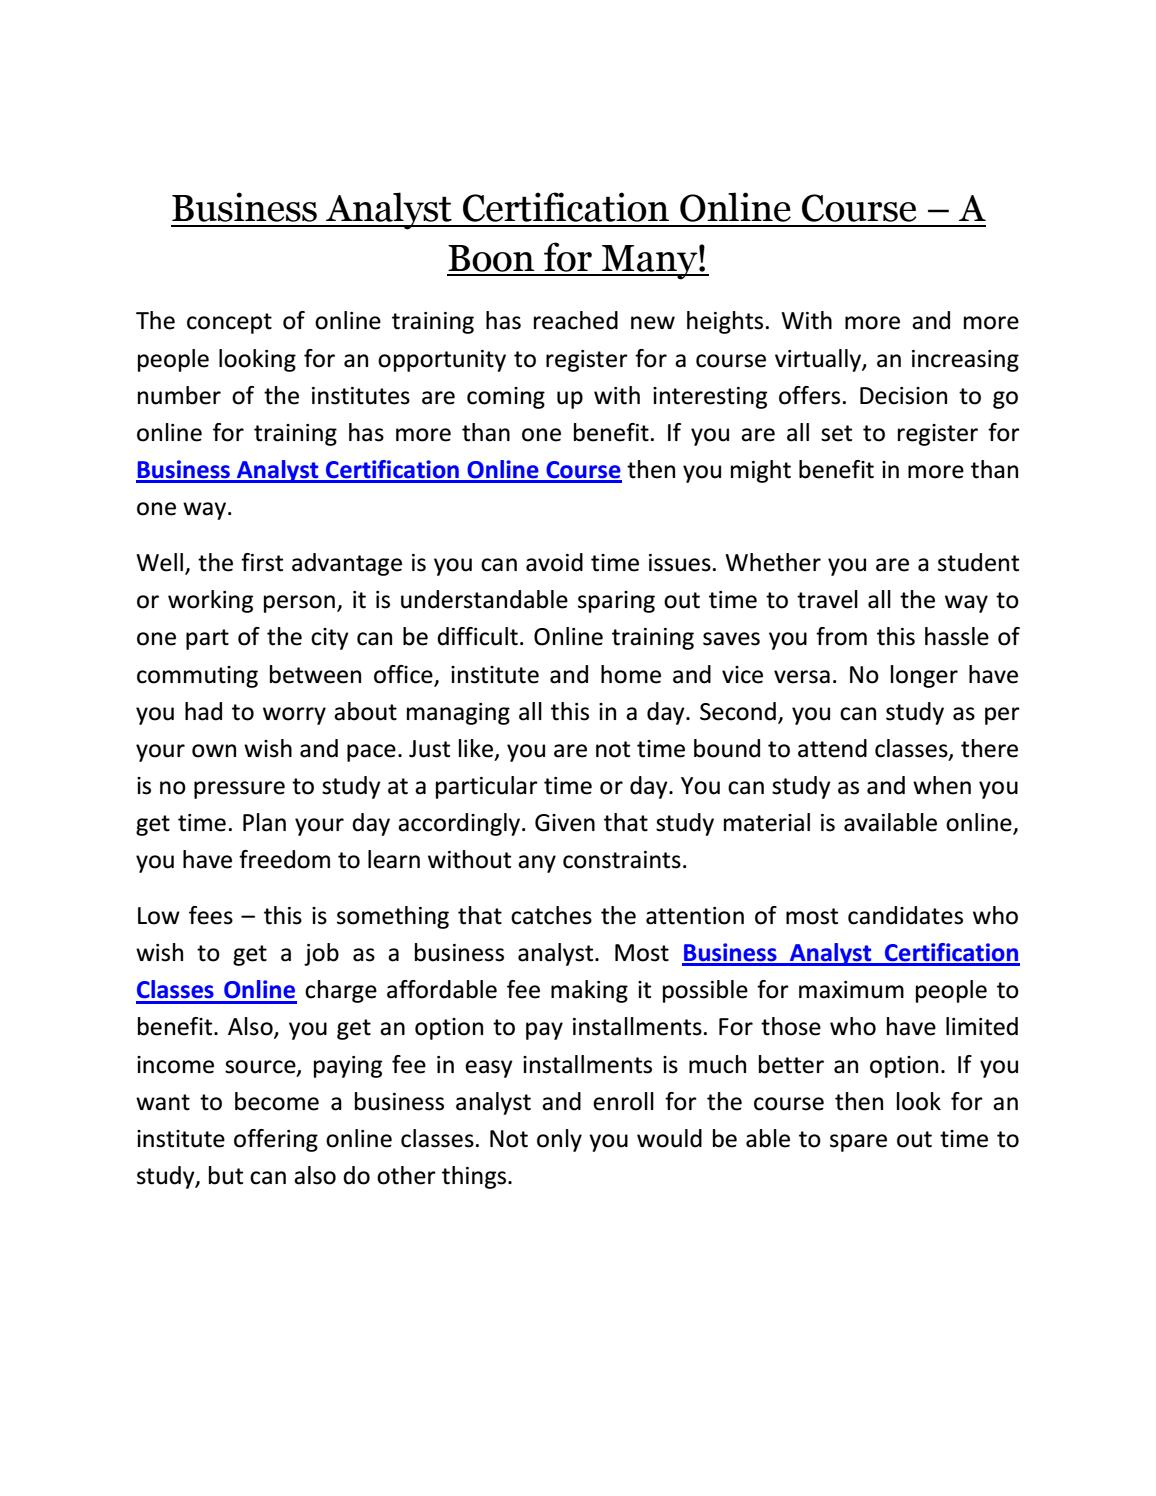 Business Analyst Certification Course A Boon For Many By